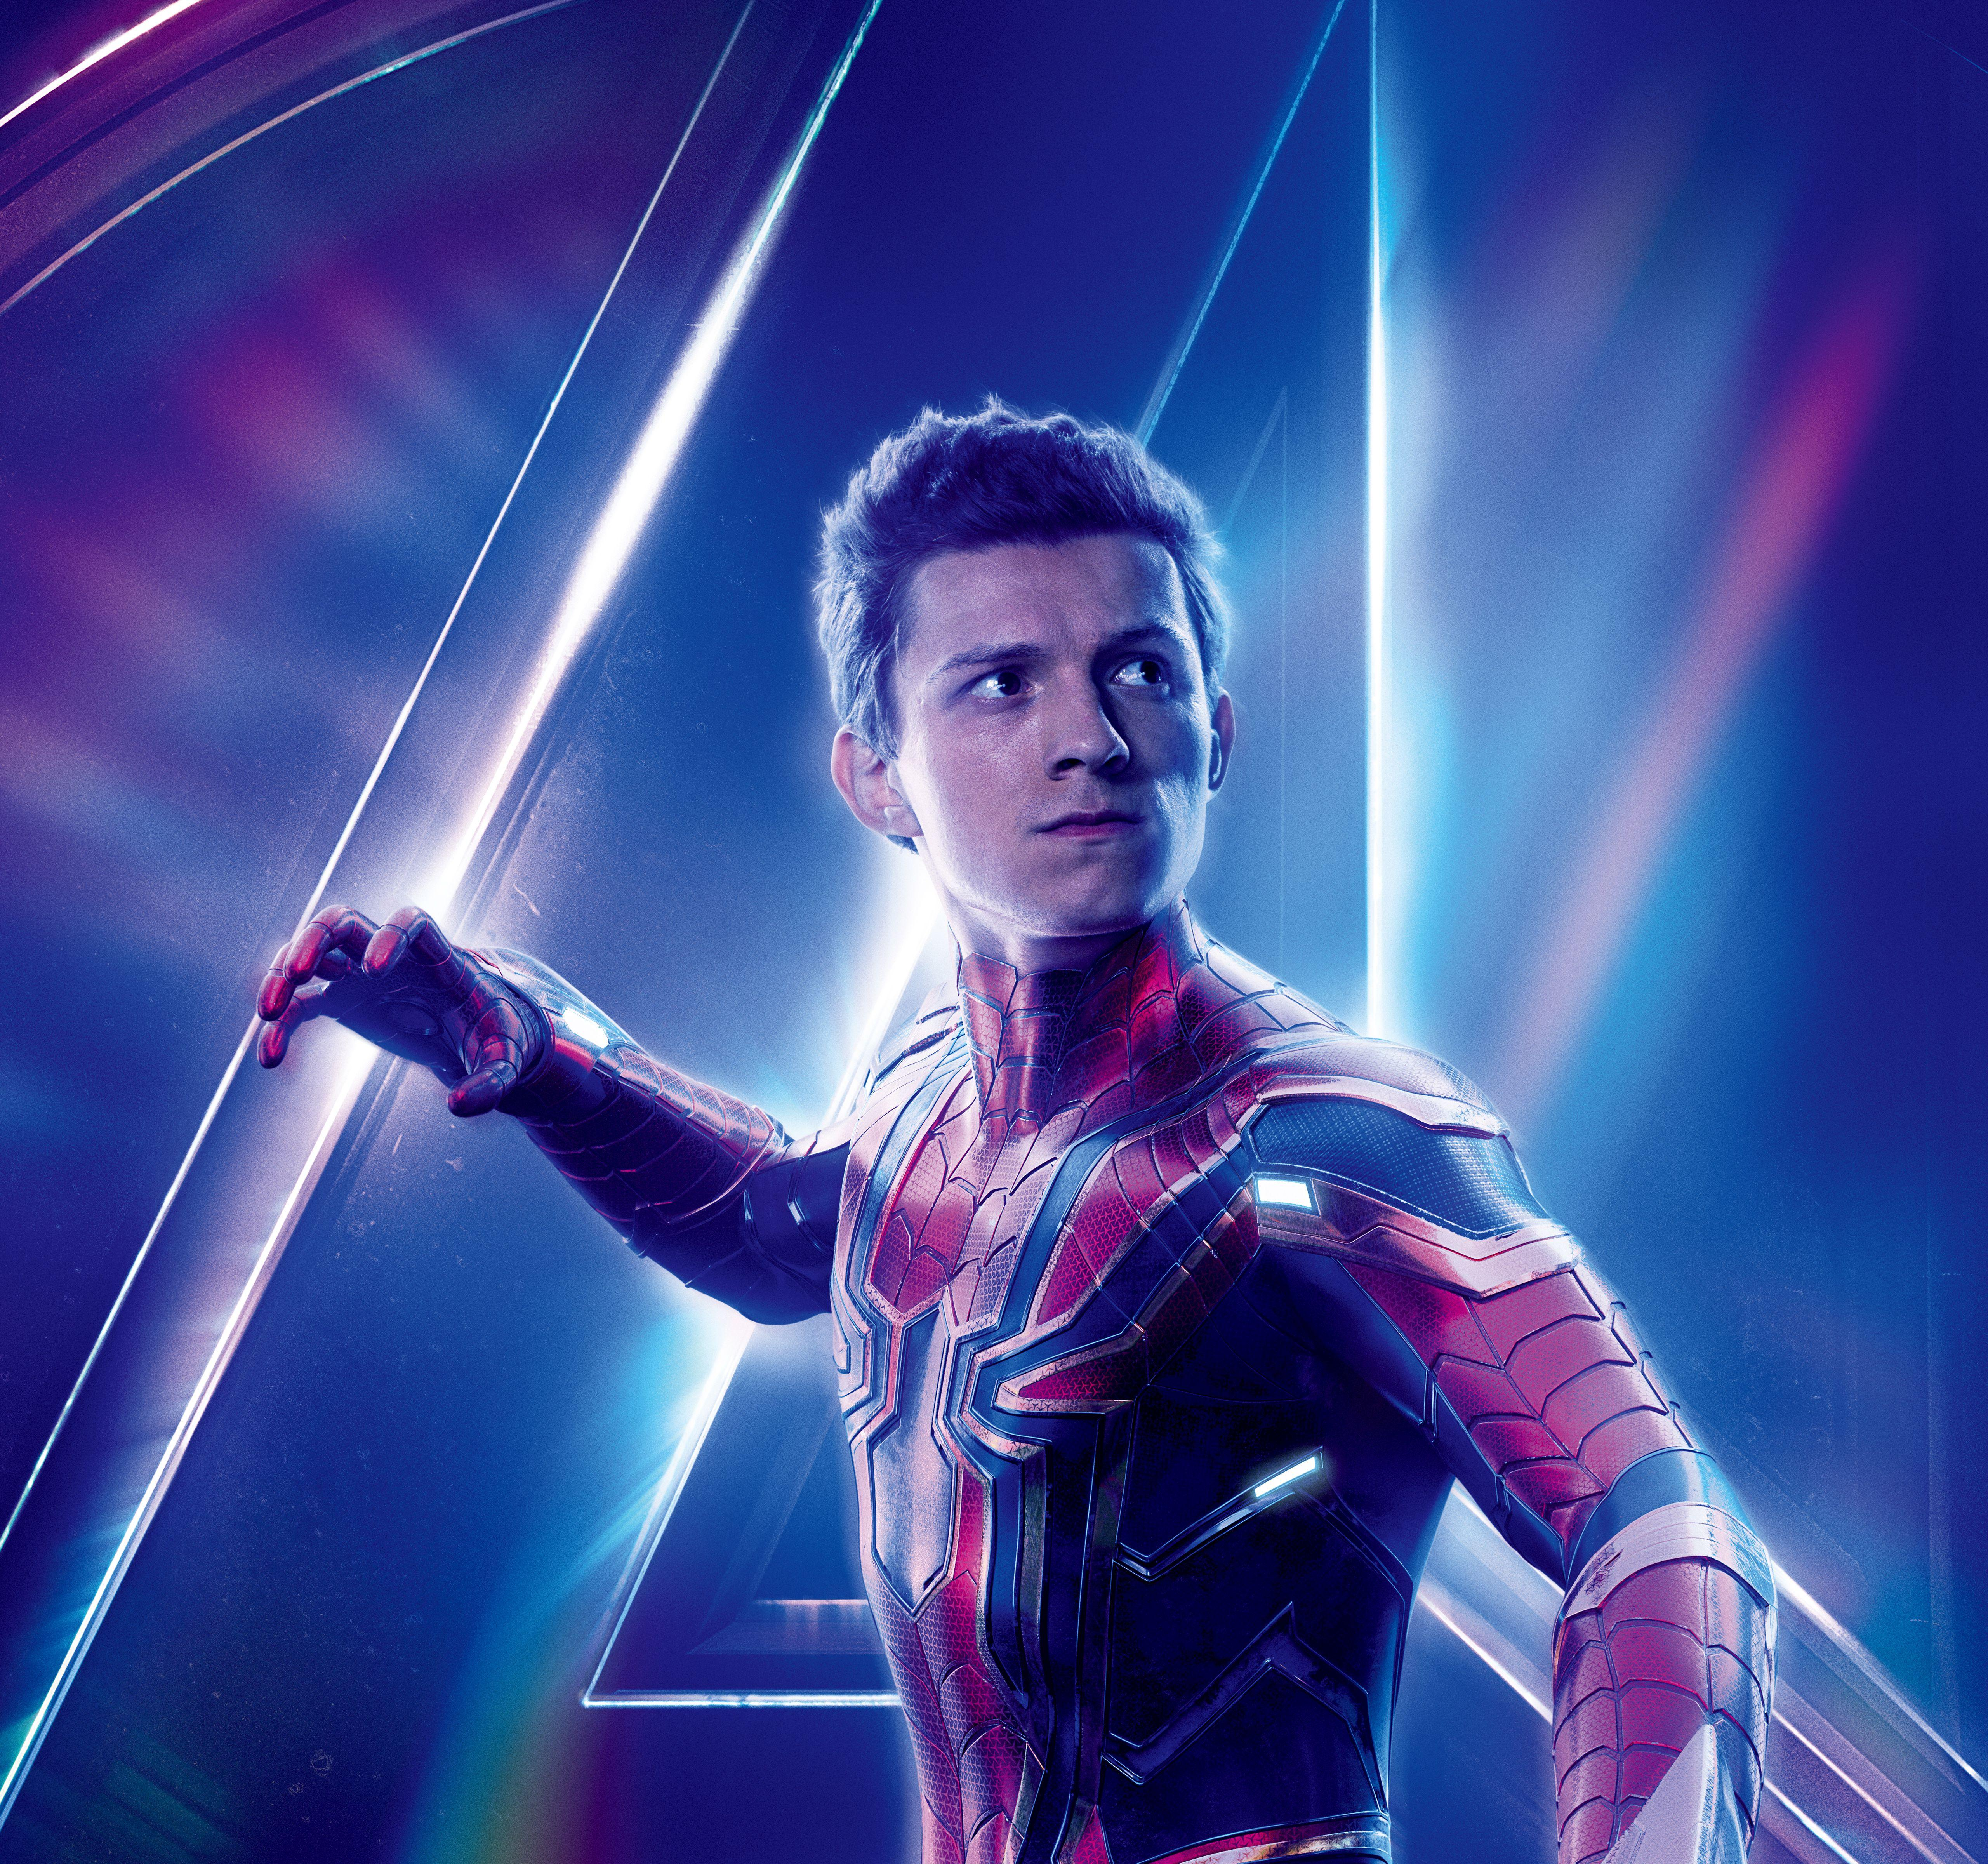 Tom Holland Spider Man Laptop Wallpapers 4k Hd Tom Holland Spider Man Laptop Backgrounds On Wallpaperbat Send it in and we'll feature it on the site! tom holland spider man laptop wallpapers 4k hd tom holland spider man laptop backgrounds on wallpaperbat